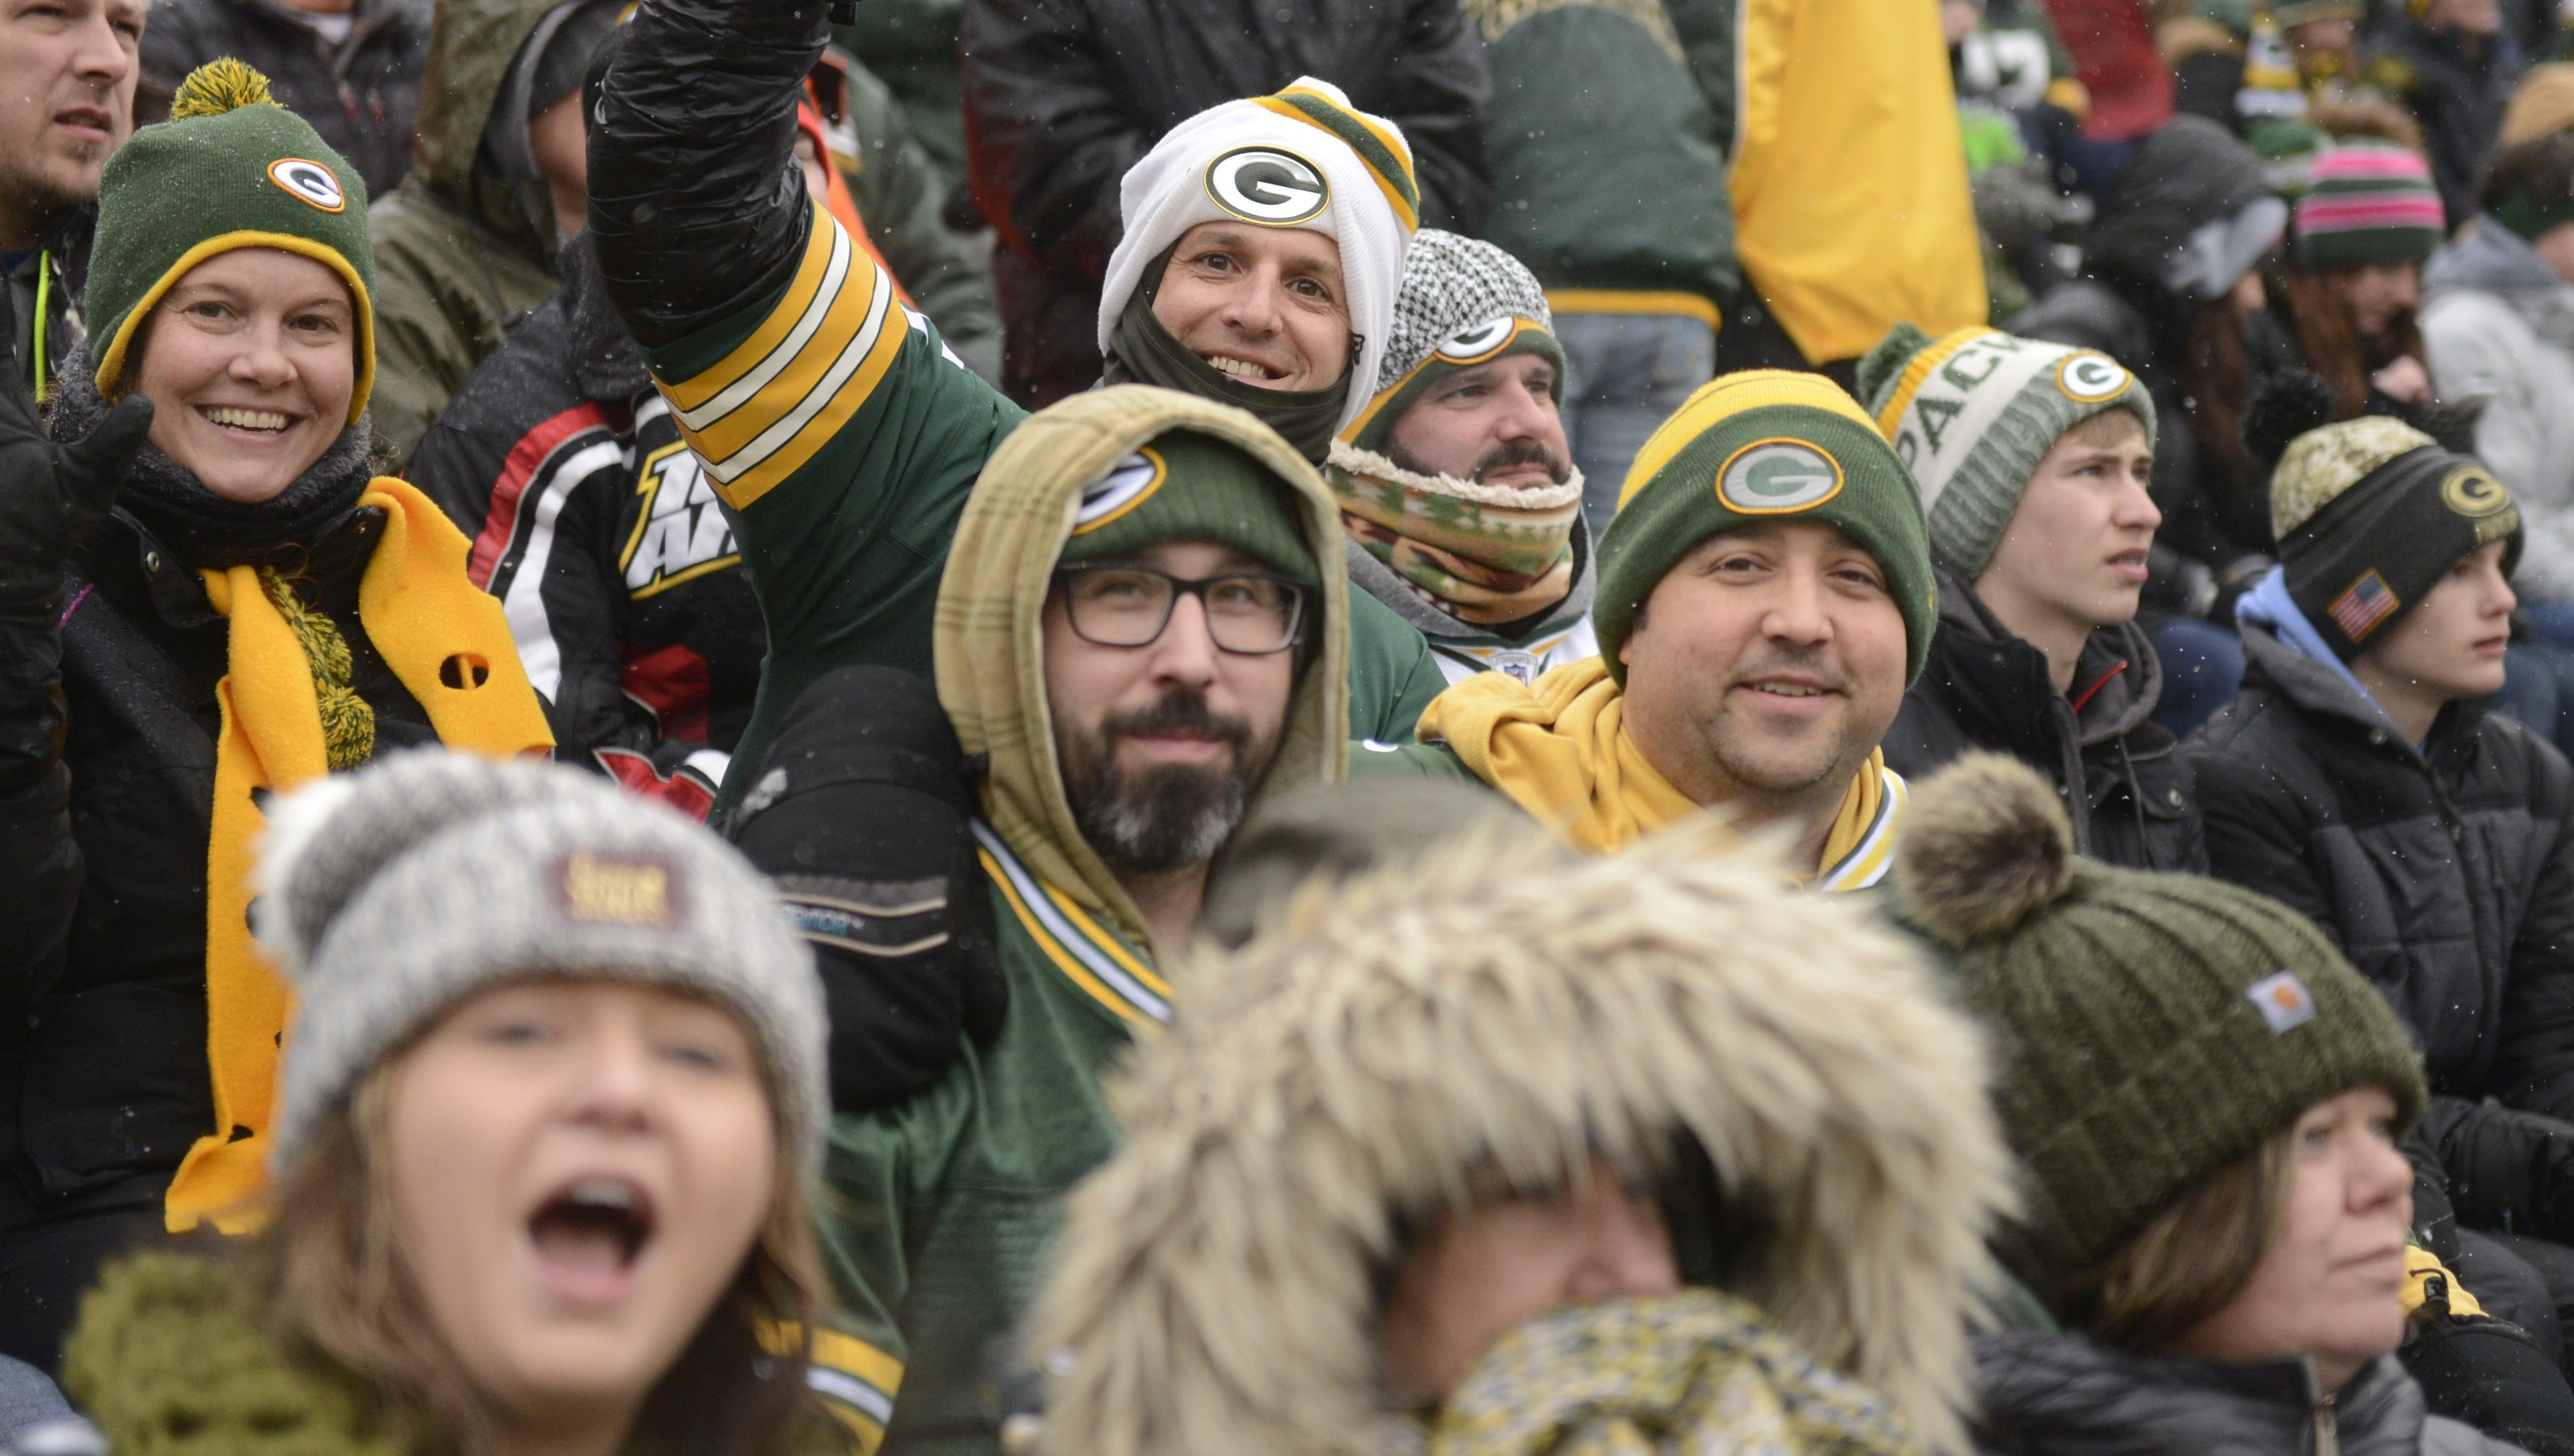 Chad Buboltz of De Pere, in white hat, sits among his season-ticket-holder friends in Section 103 at Lambeau Field during game against Arizona Cardinals, Dec. 2, 2018.